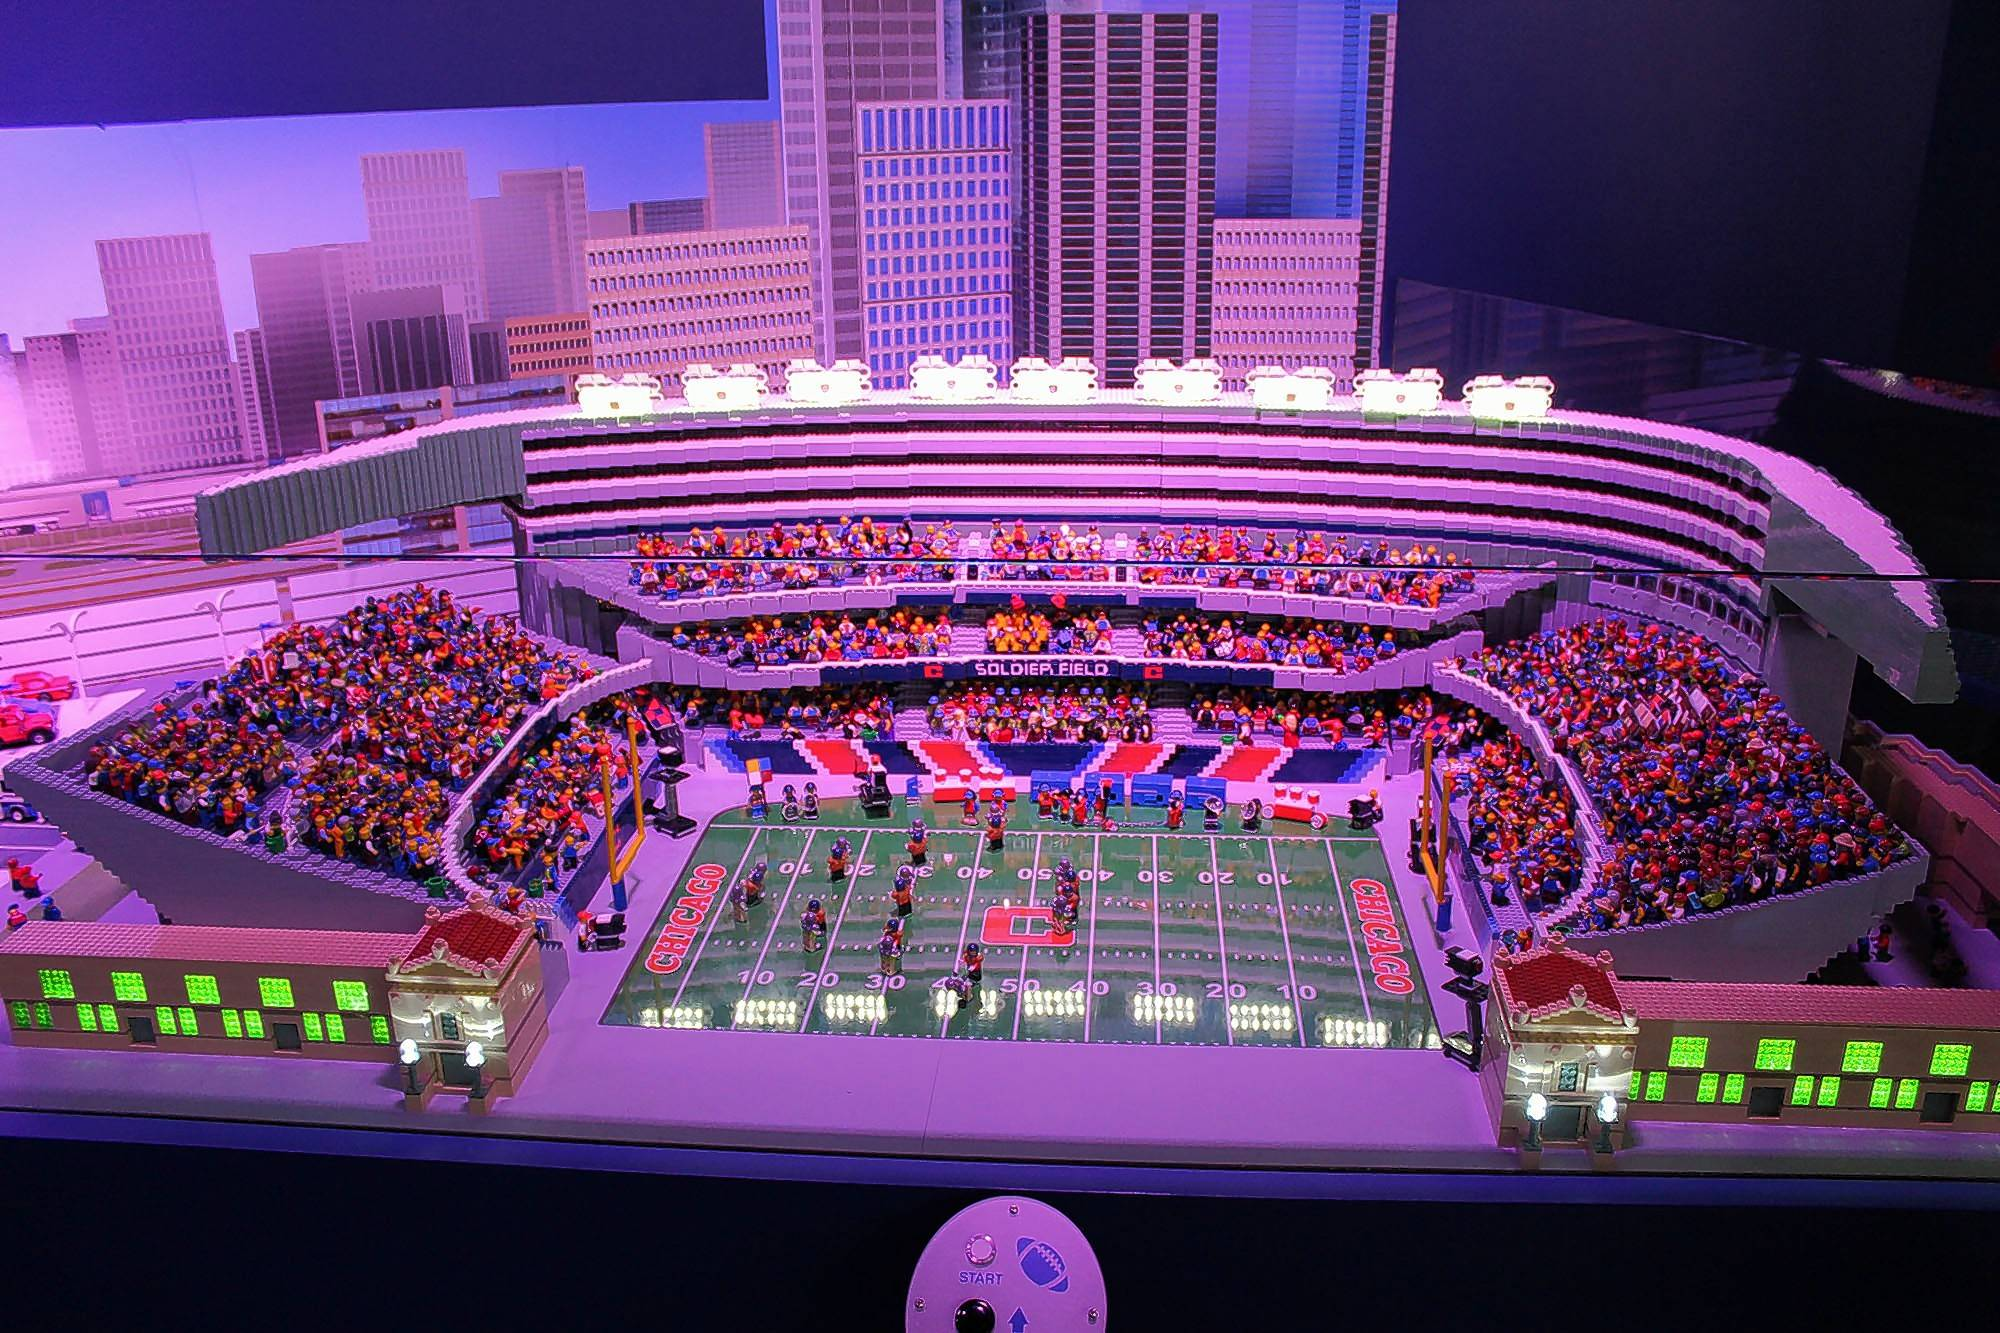 A replica of Soldier Field, complete with players and spectators, is one of the new attractions that debuted Friday at Legoland Discovery Center in Schaumburg.